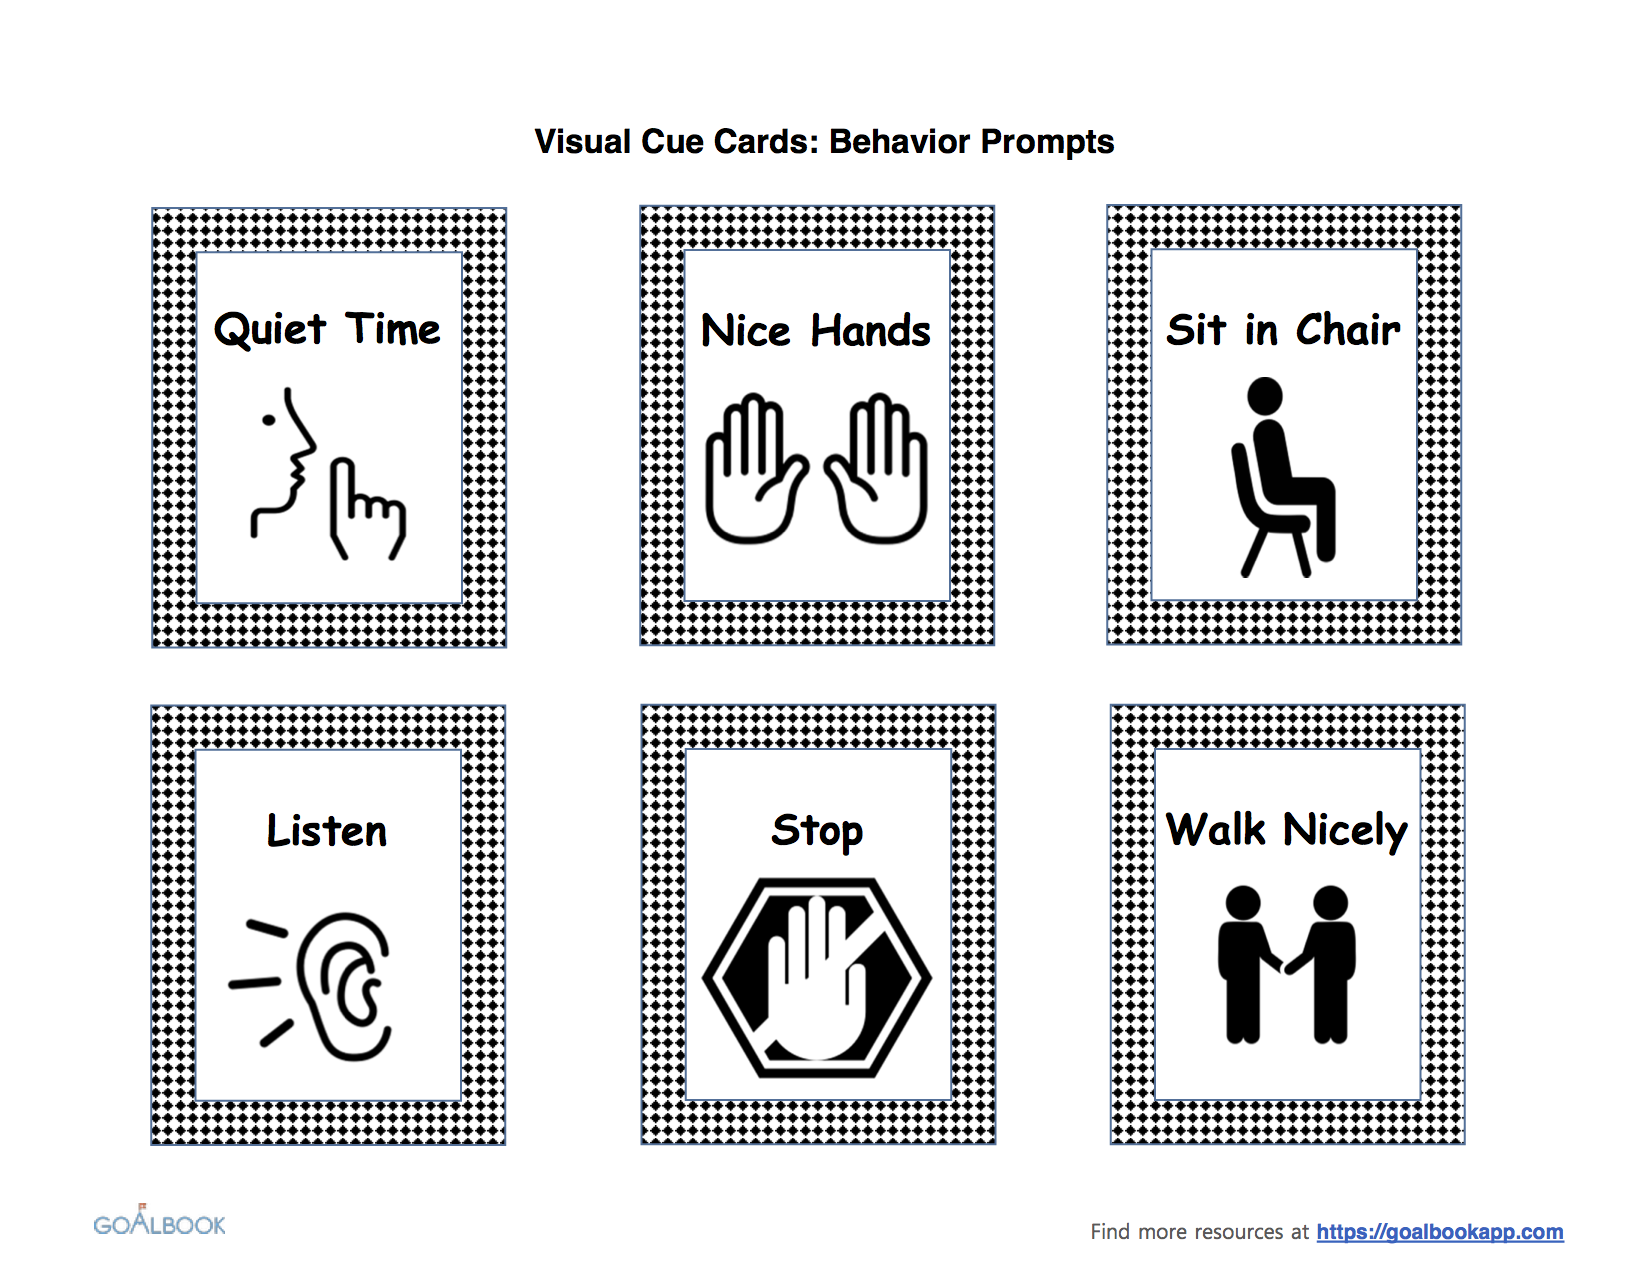 Visual cue cards for behaviour guidance of children.